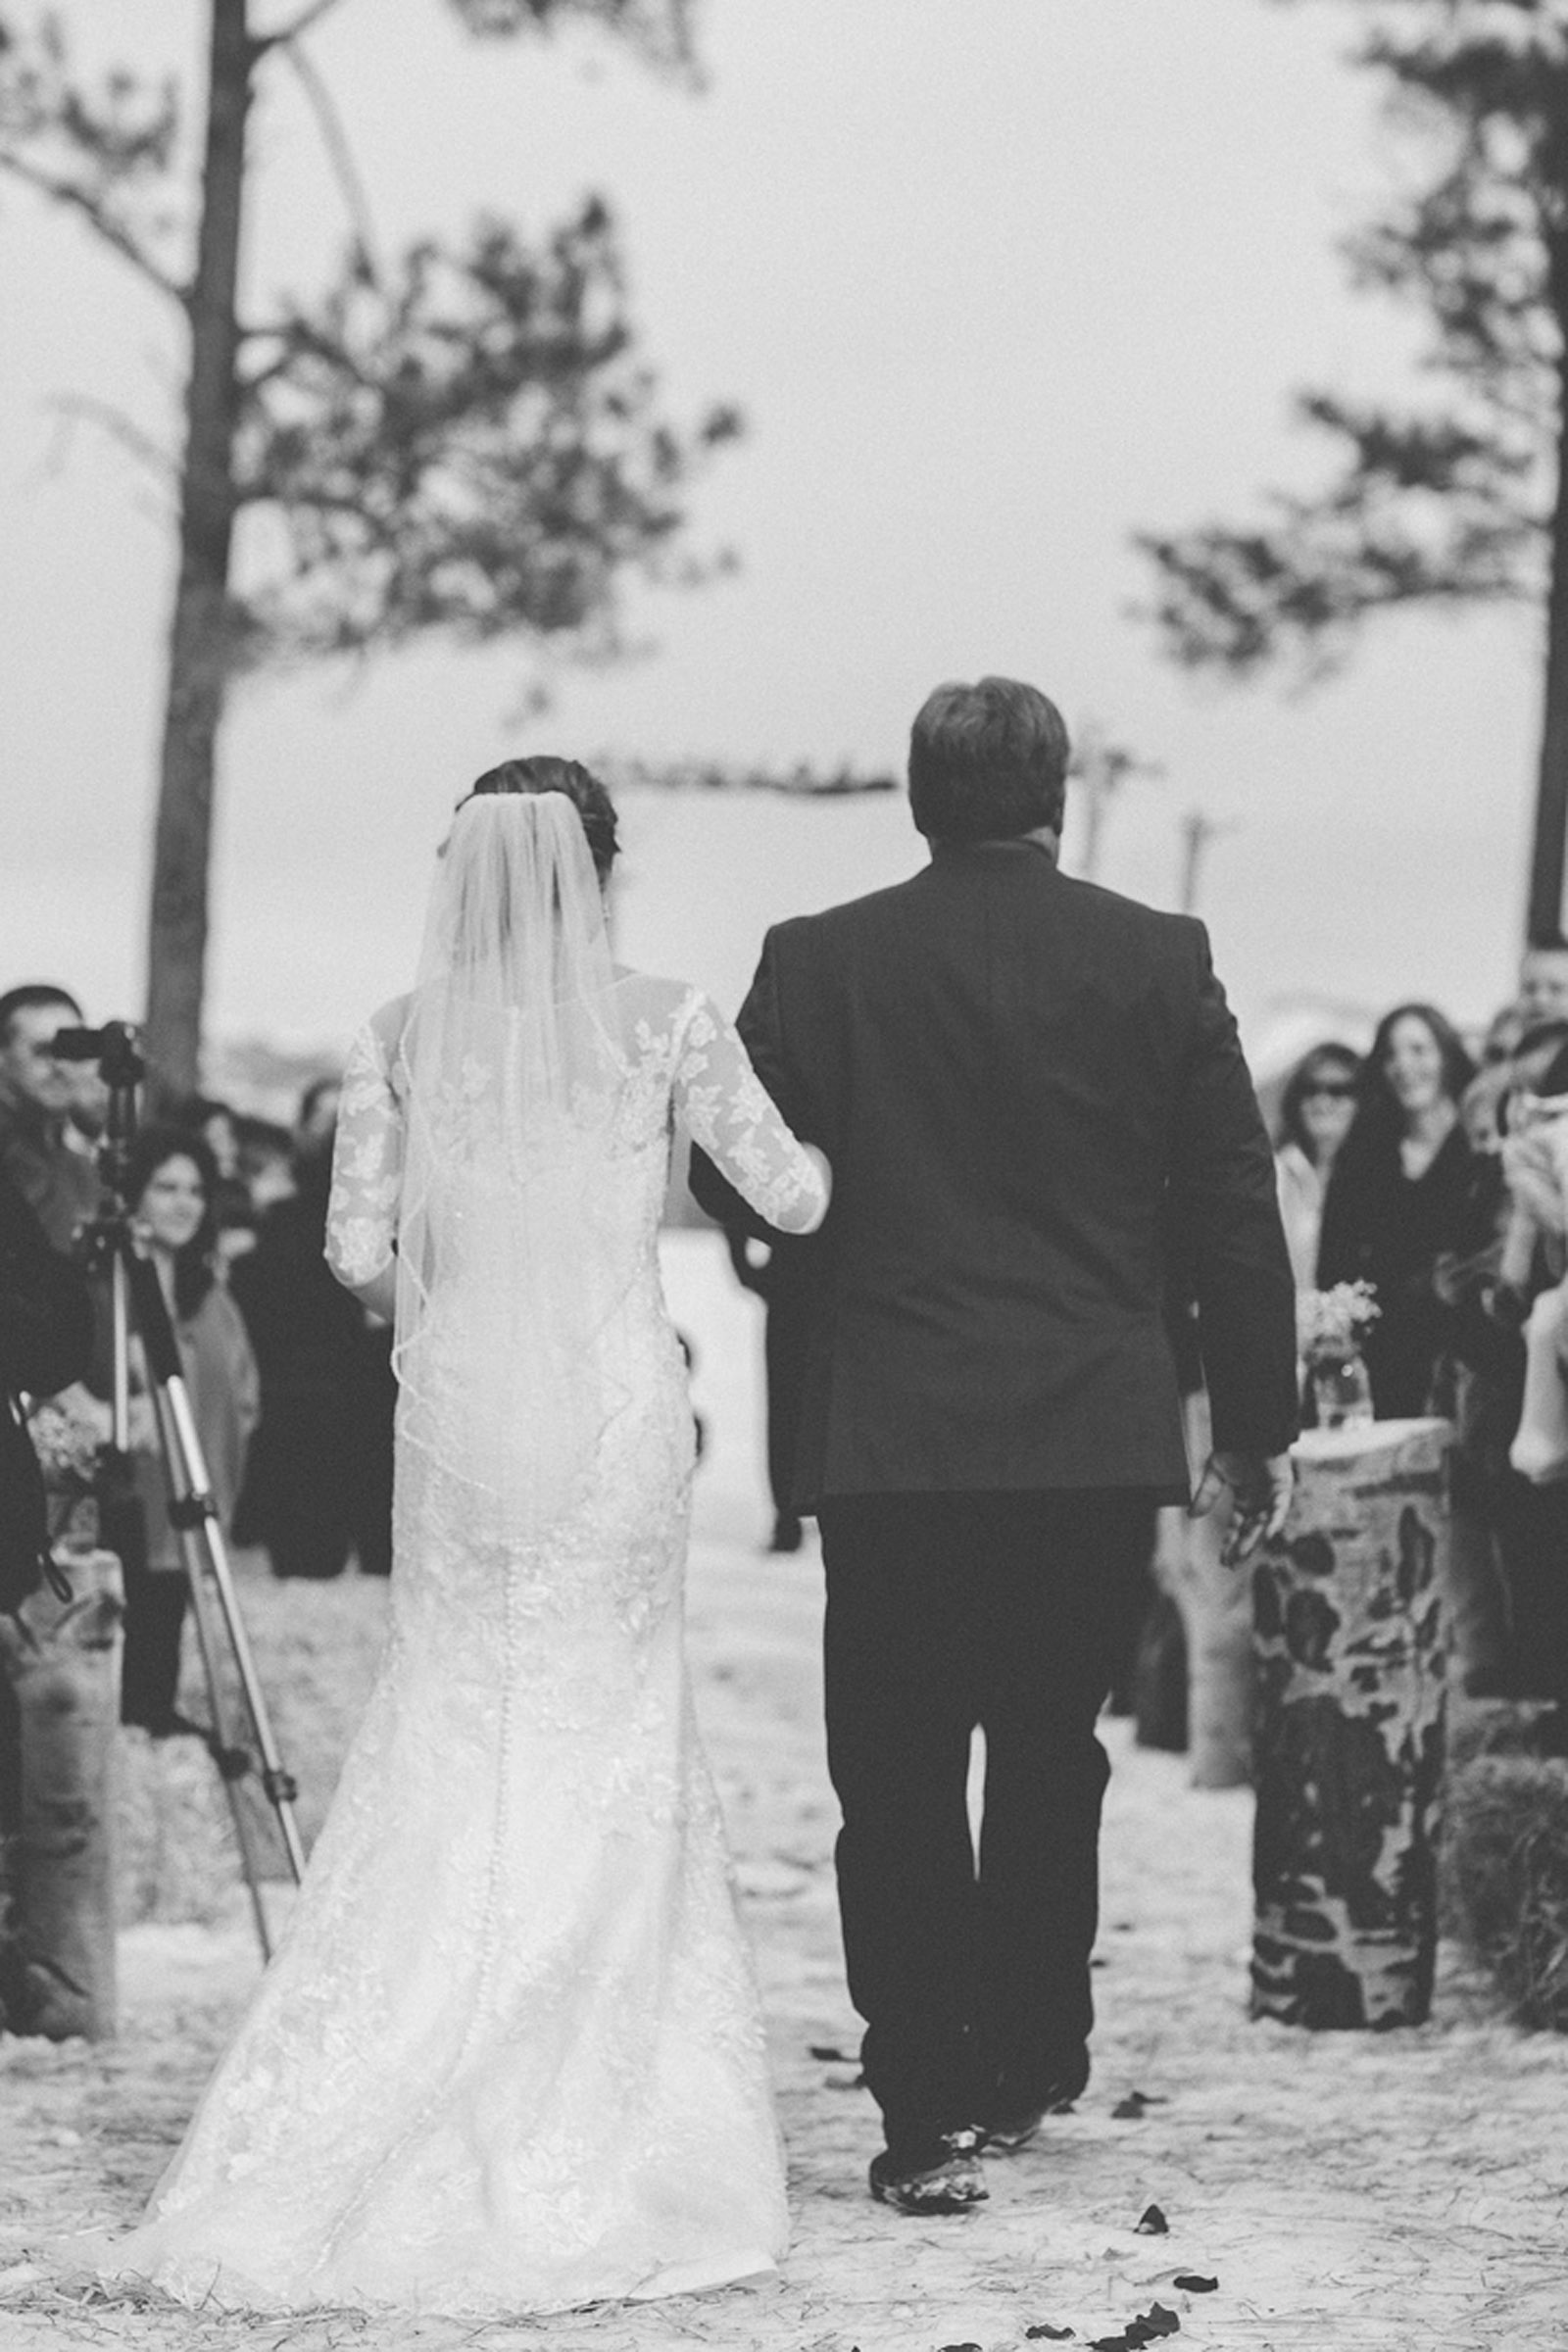 097-wedding-ceremony-in-pagosa-springs-wedding-photographer-snow-winter-wedding